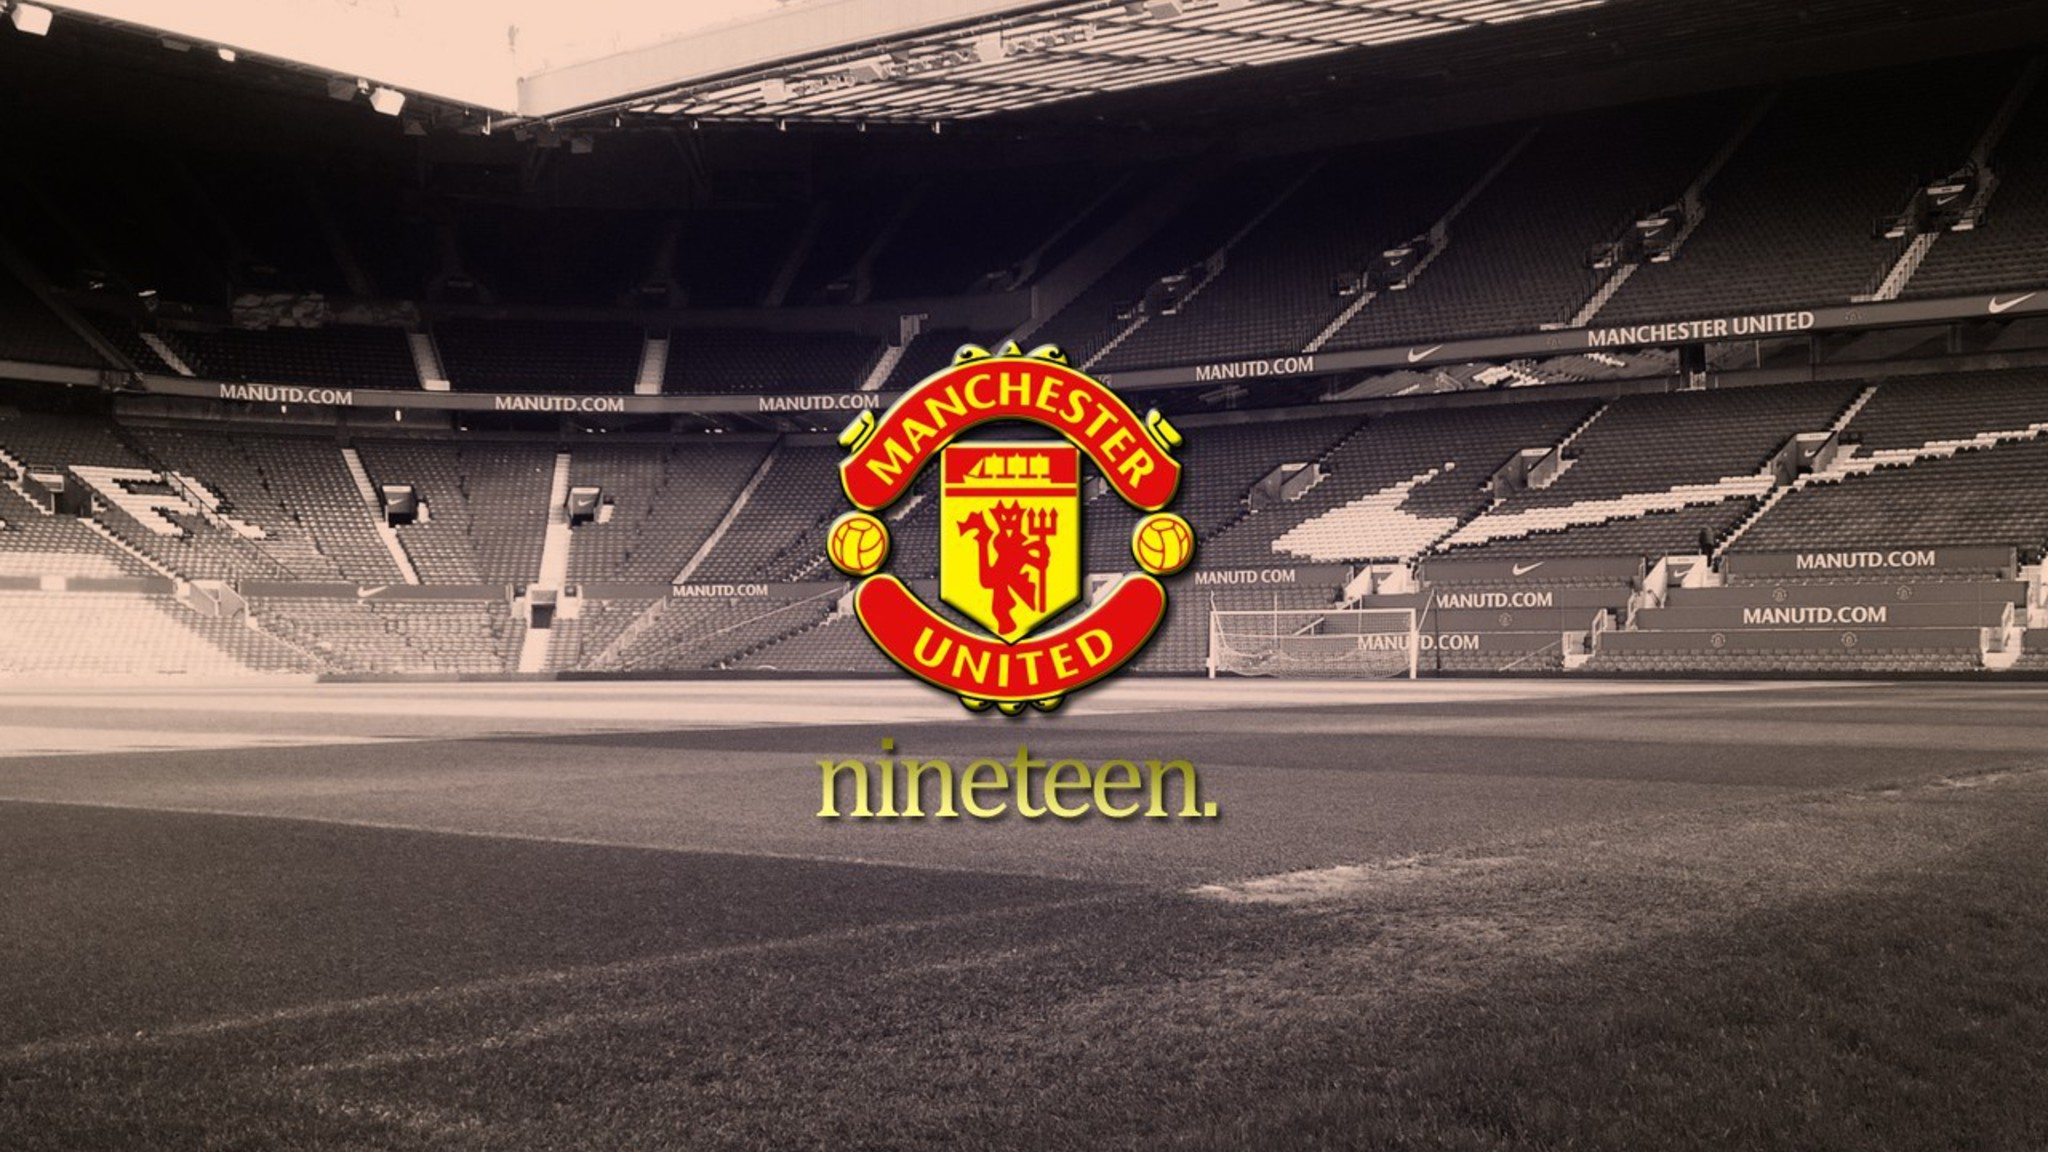 Manchester United Wallpaper Iphone 5 Soccer Manchester United Fc Wallpaper Allwallpaper In